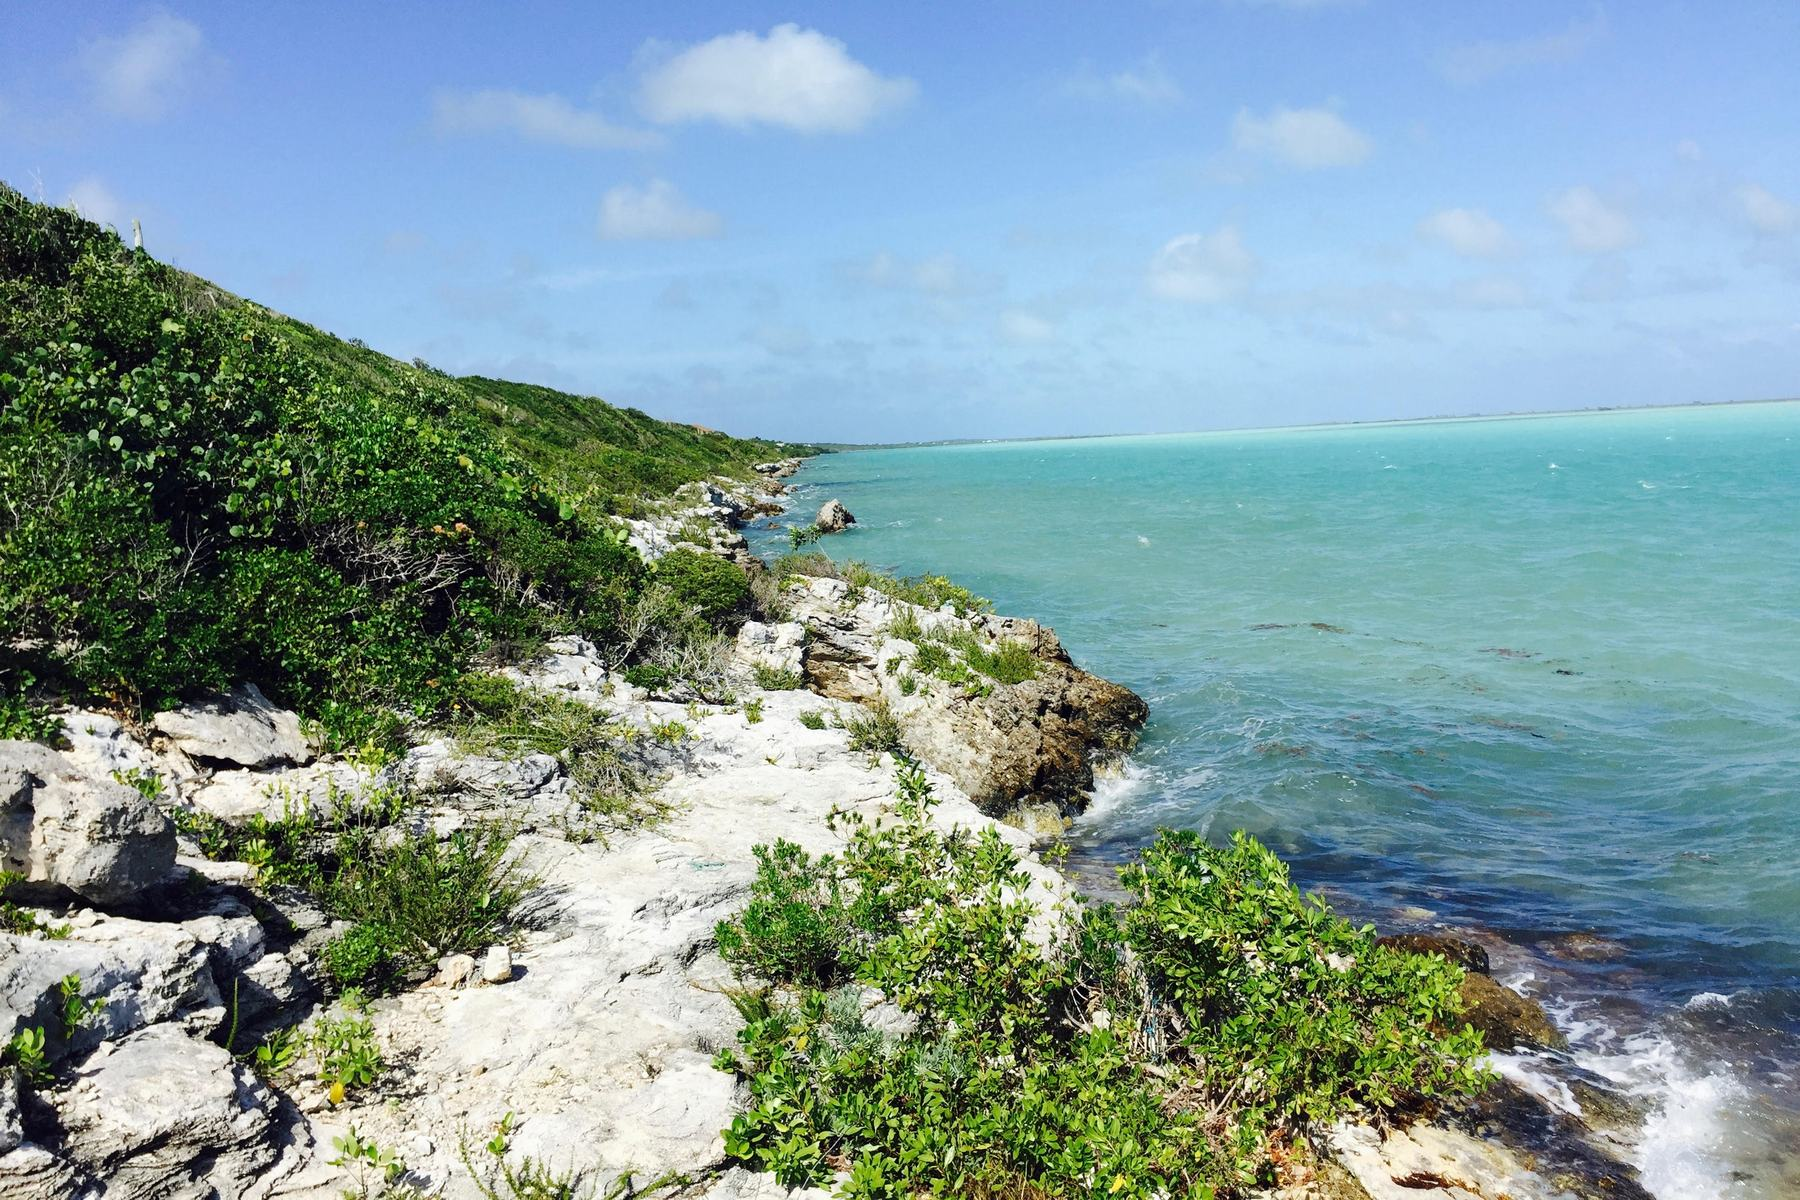 Land for Sale at NORTH CAICOS WATERFRONT Other Turks And Caicos Islands, Other Areas In The Turks And Caicos Islands Turks And Caicos Islands